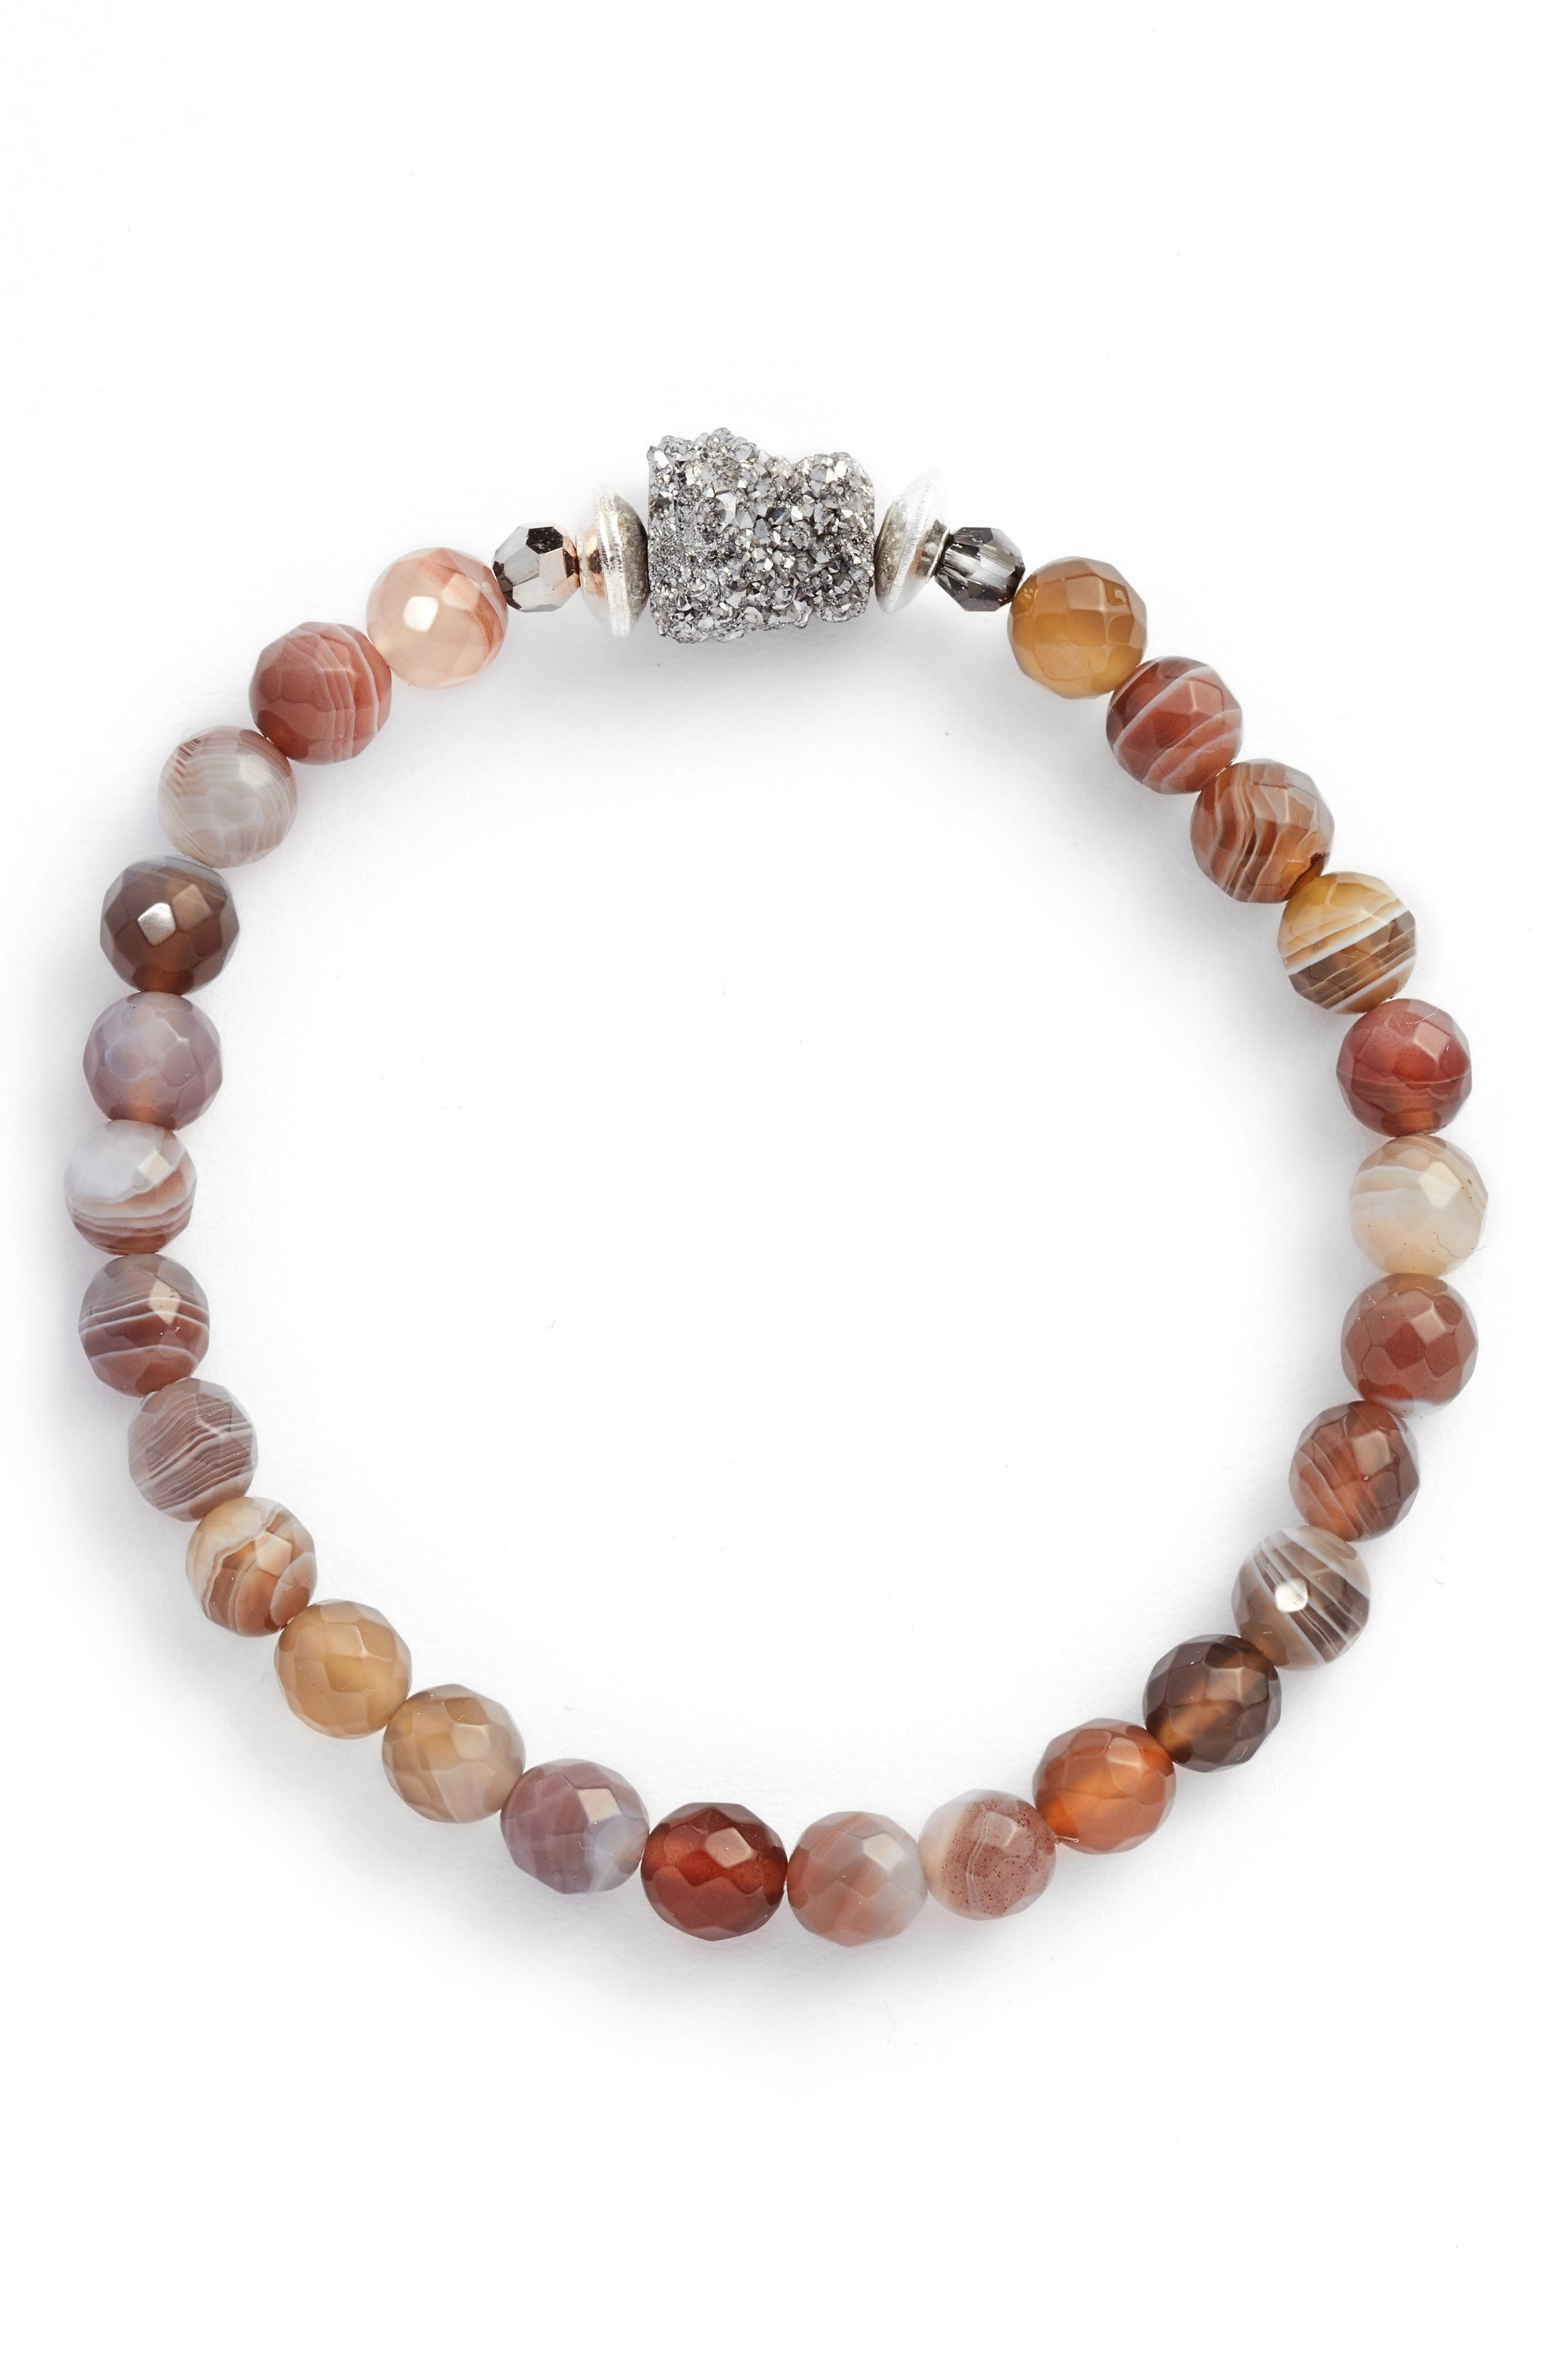 Agate Stretch Bracelet,                         Main,                         color, Botswana Agate Mix